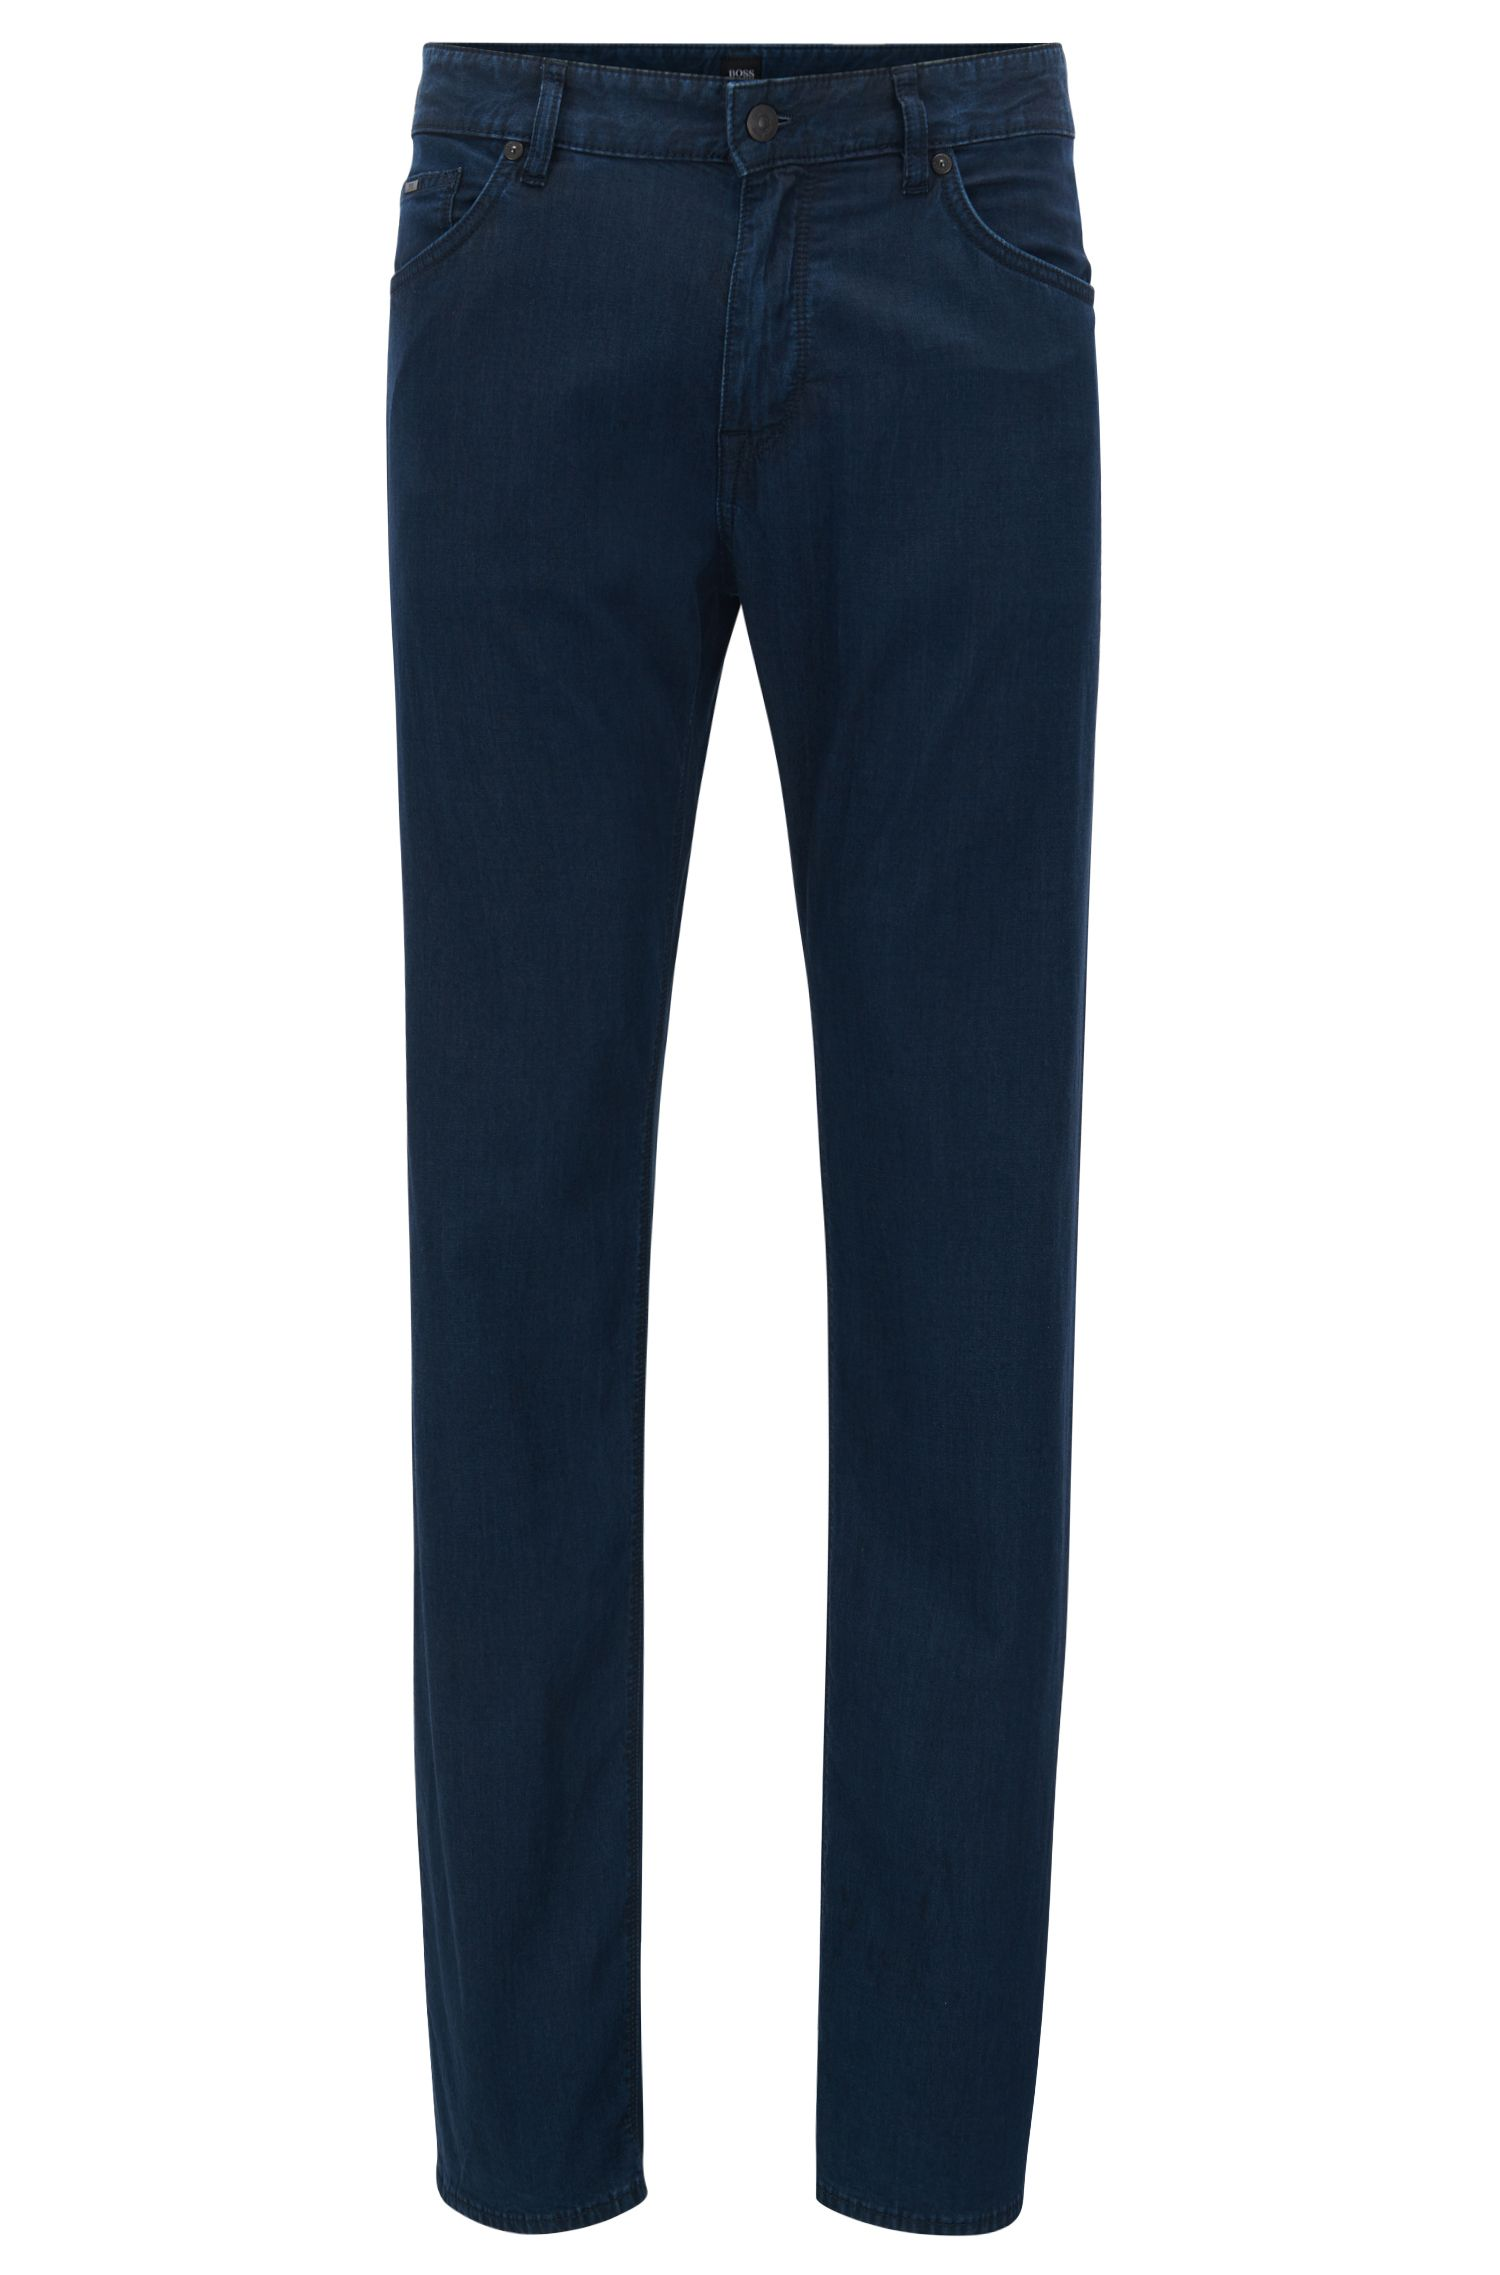 Regular-fit dark-blue jeans in lightweight stretch denim BOSS